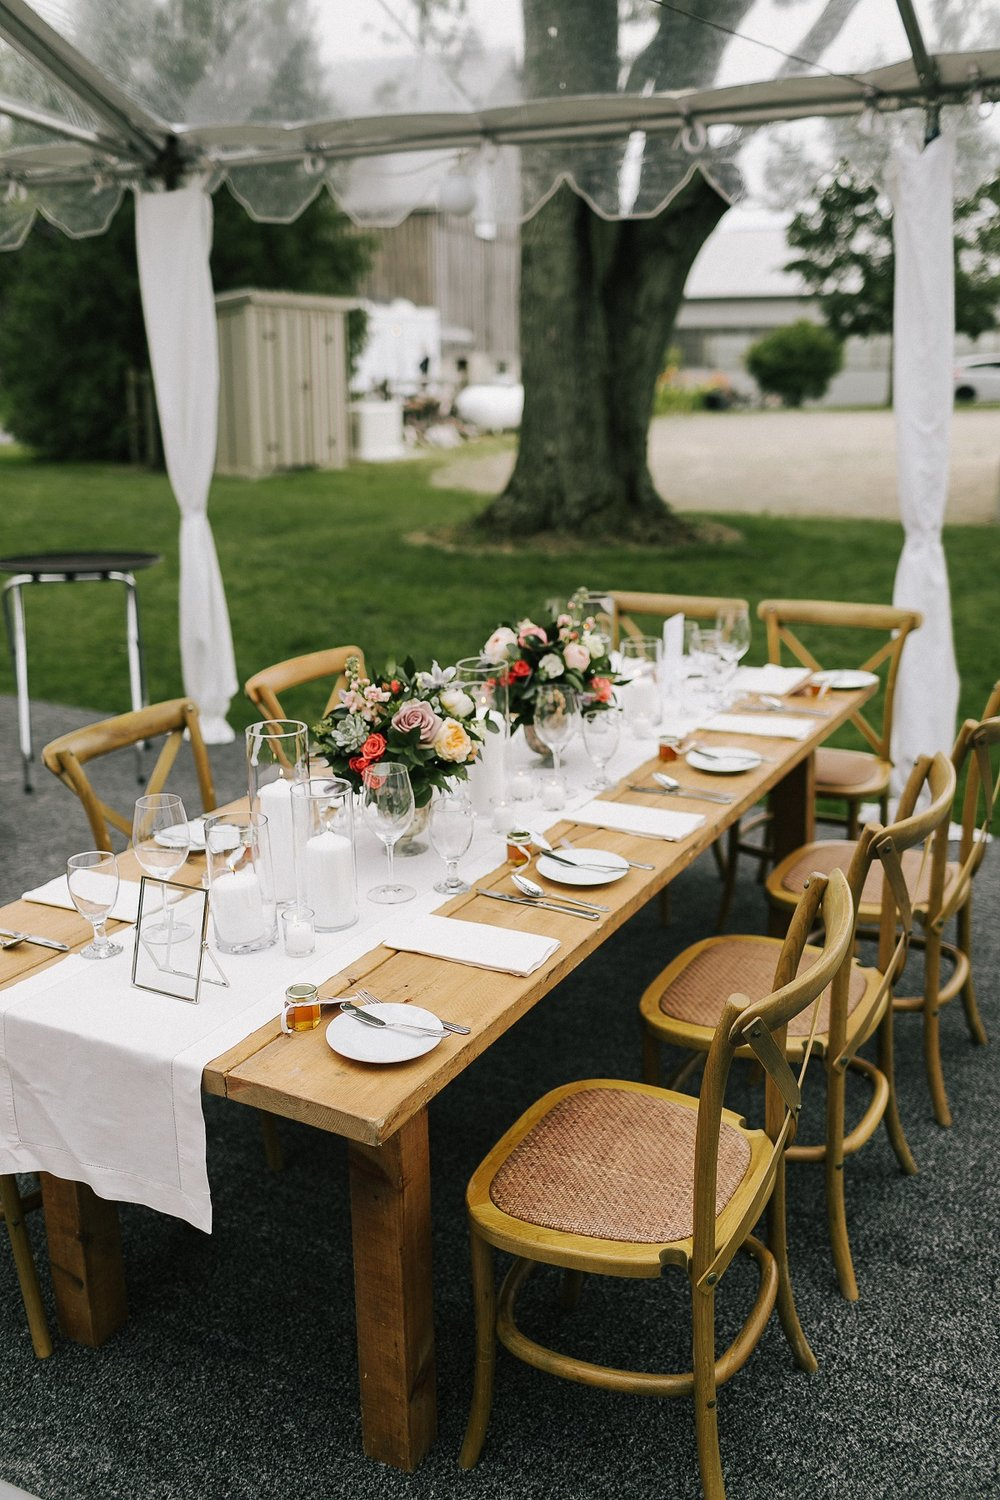 tented-wedding-planner-ancaster-kj-and-co 25.JPG